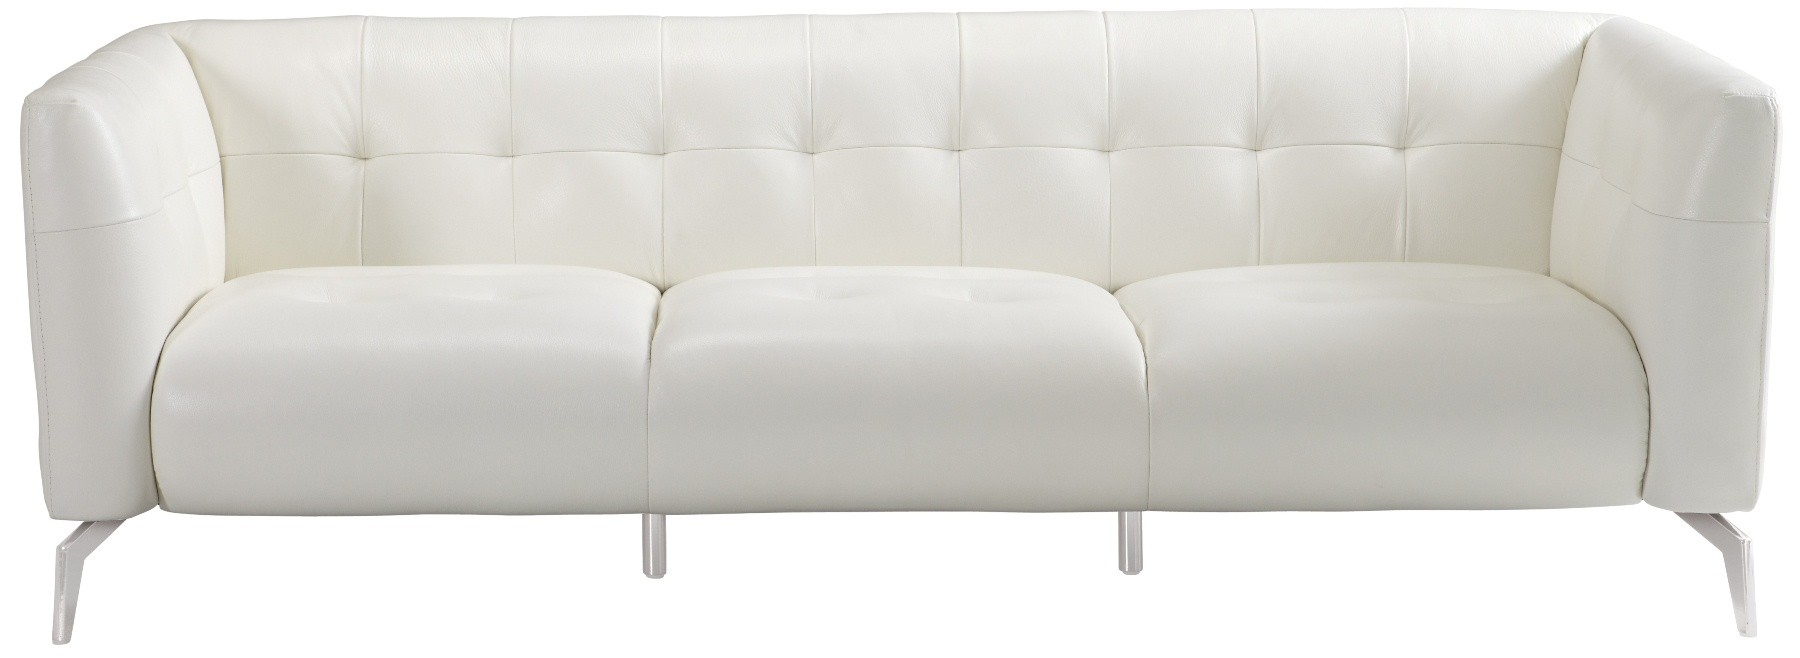 Attractive White Couch